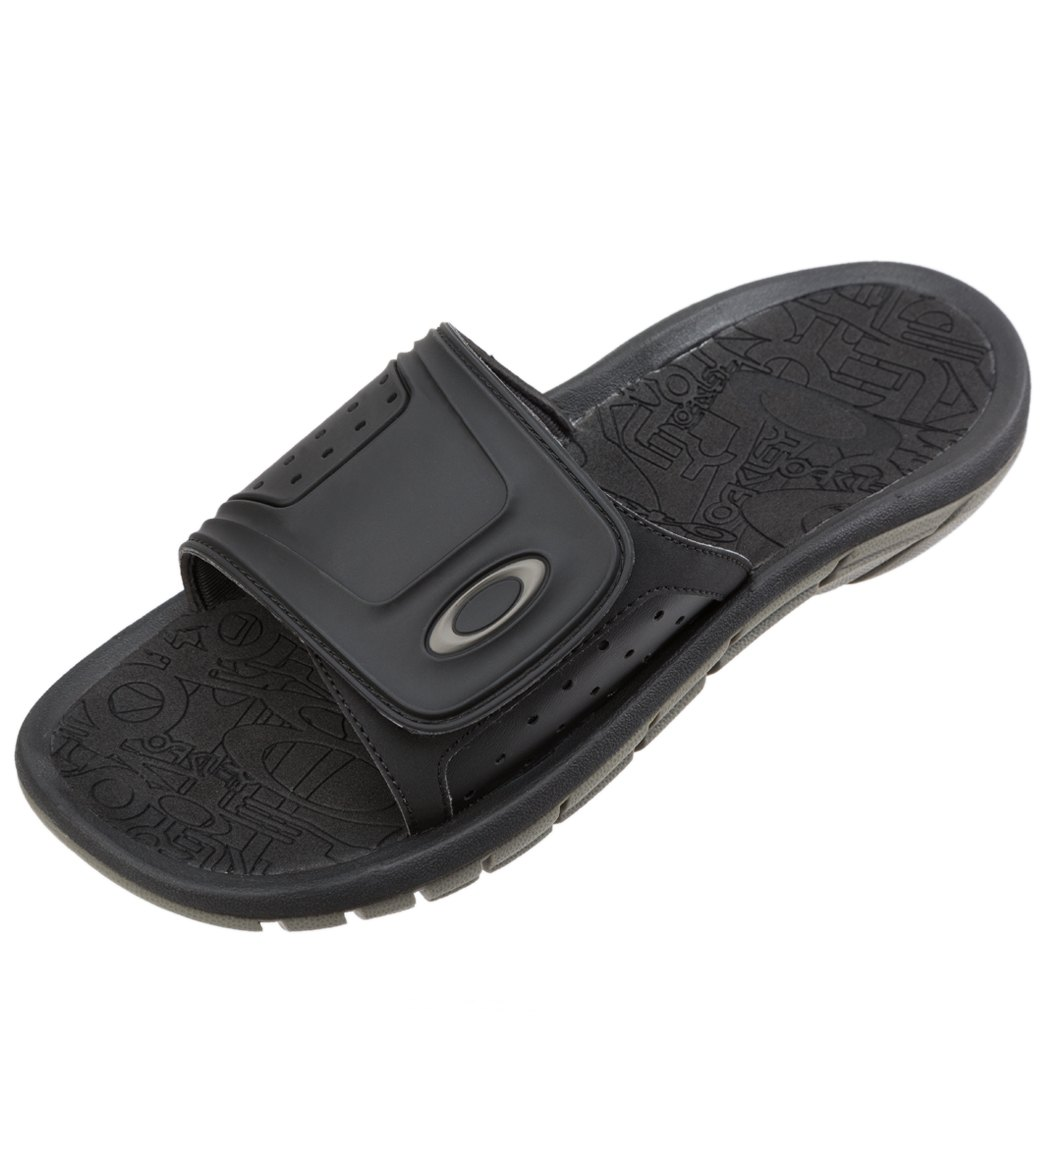 56084a8644ec Oakley Men s Supercoil Slide Sandals at SwimOutlet.com - Free ...